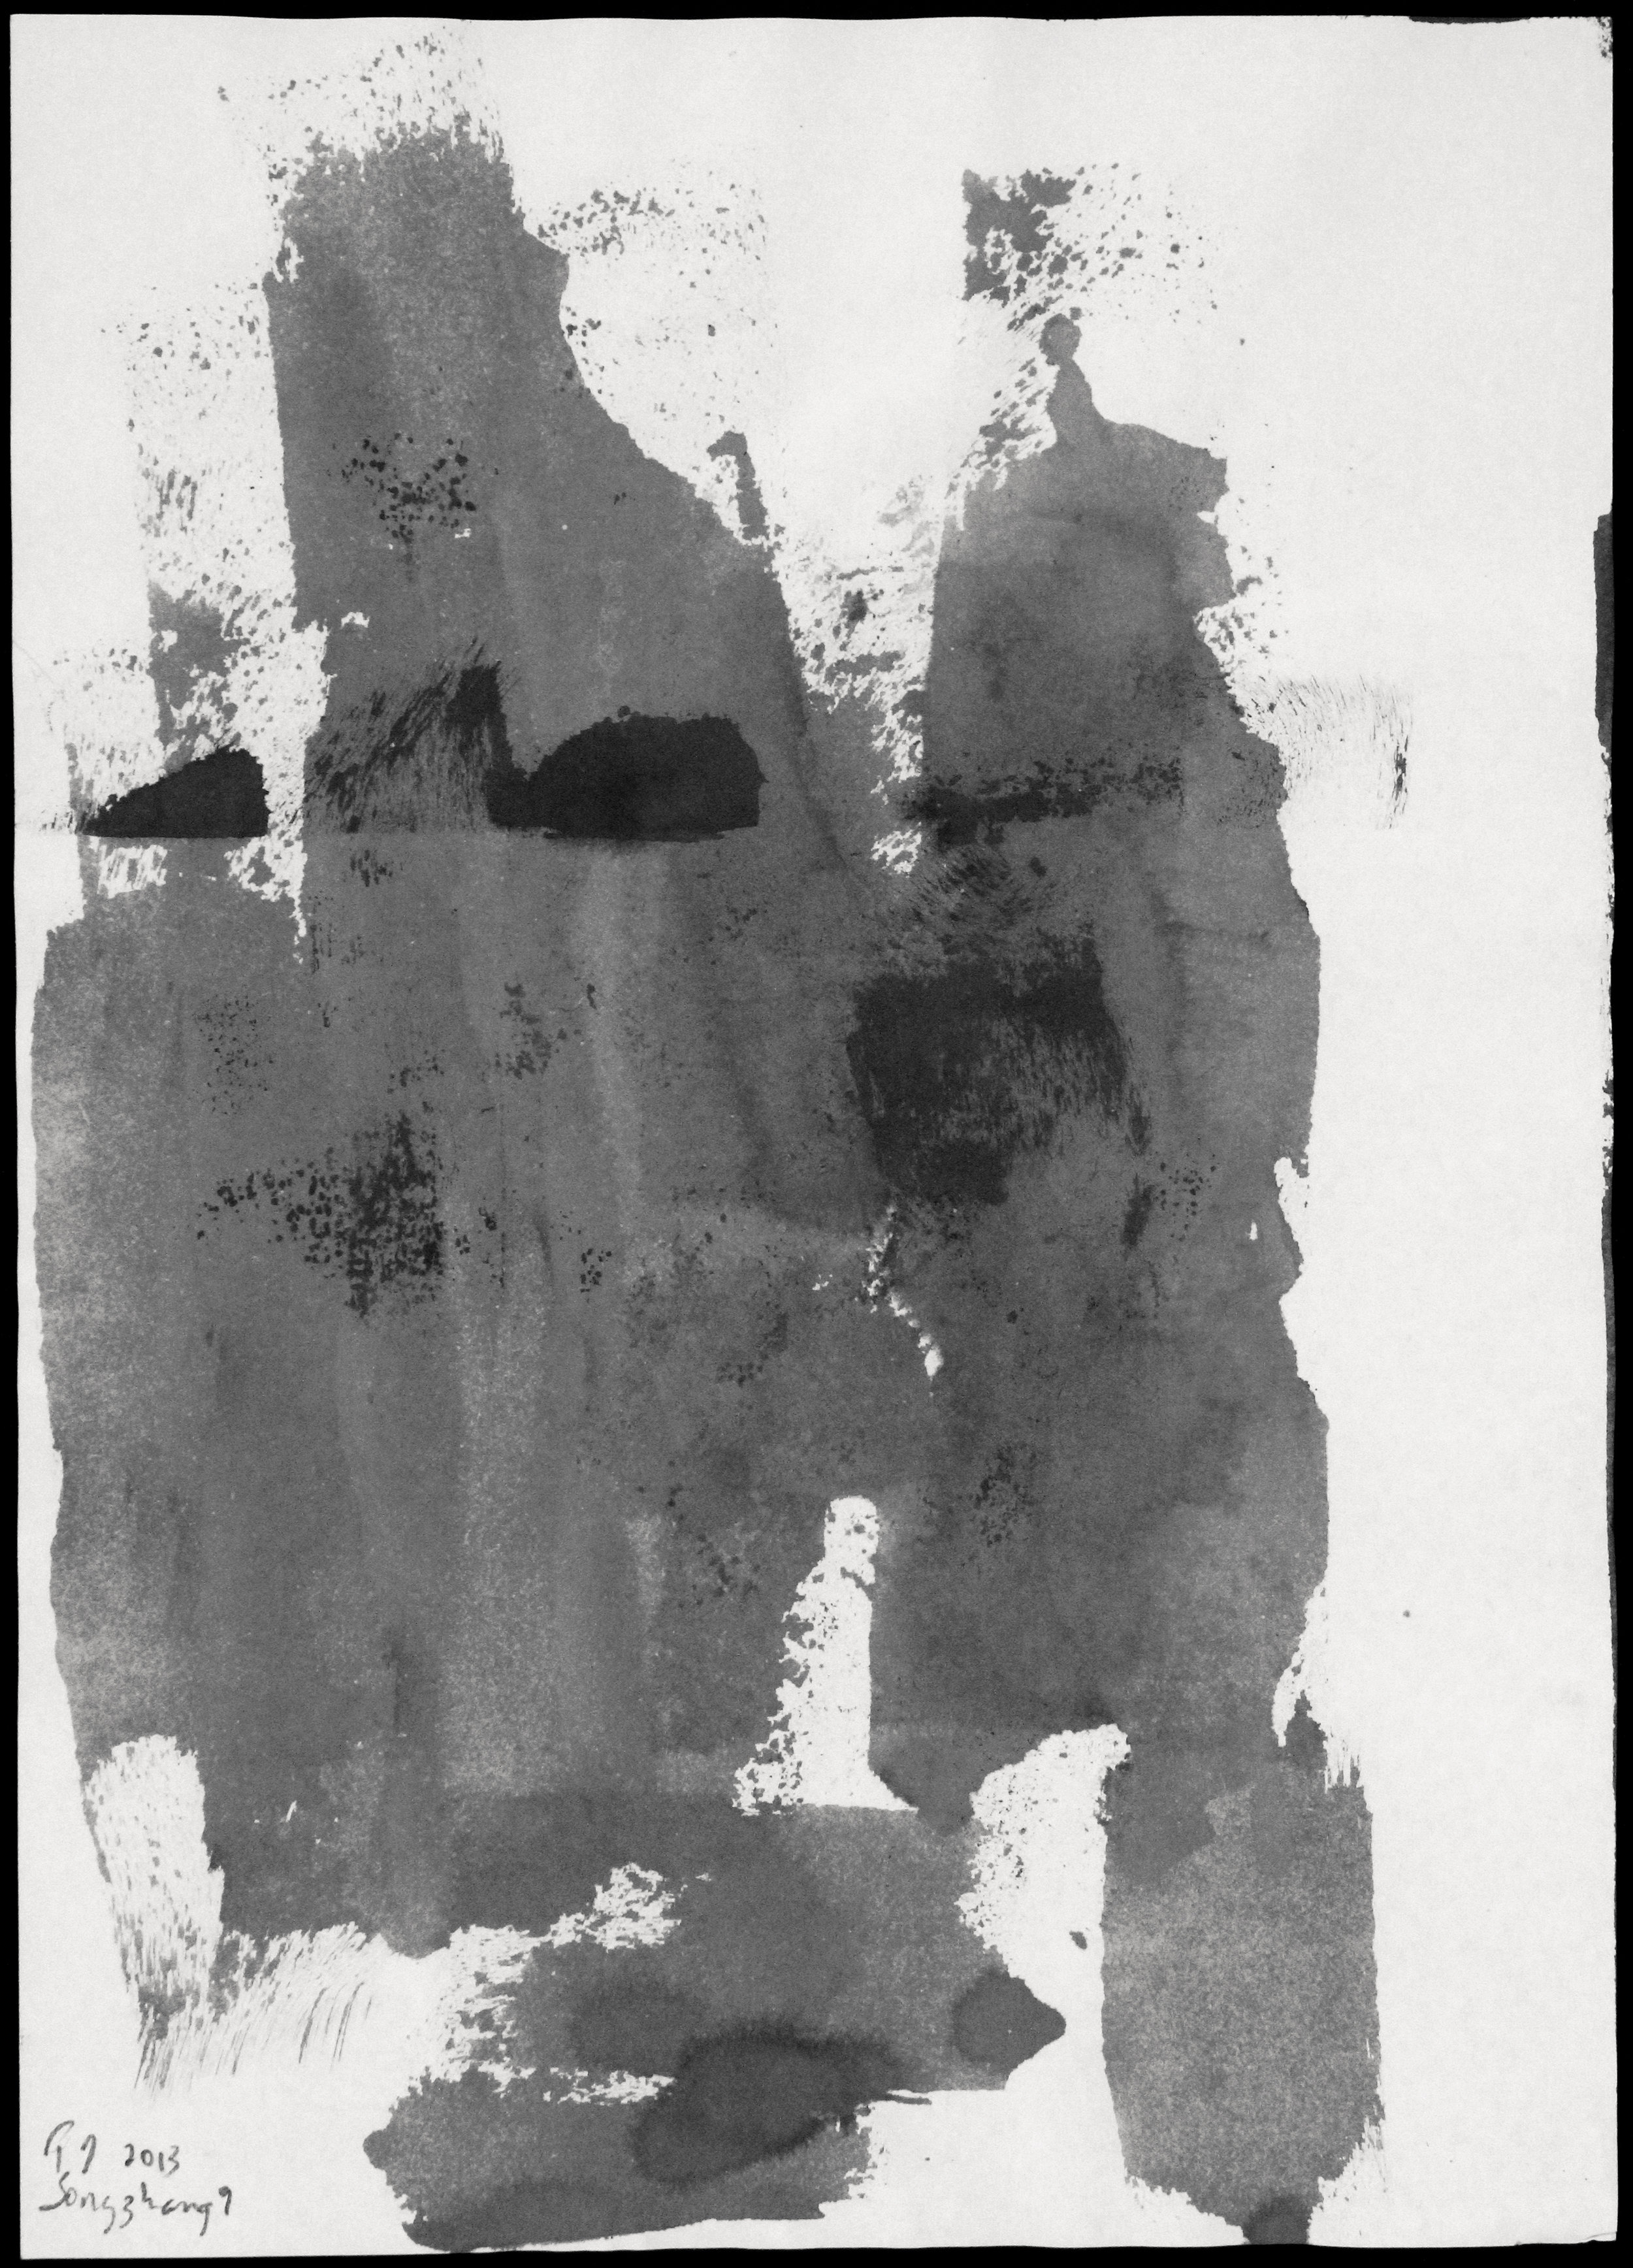 Songzhuang 9, 2013, Ink on Rice Paper, 21 in x 16 in